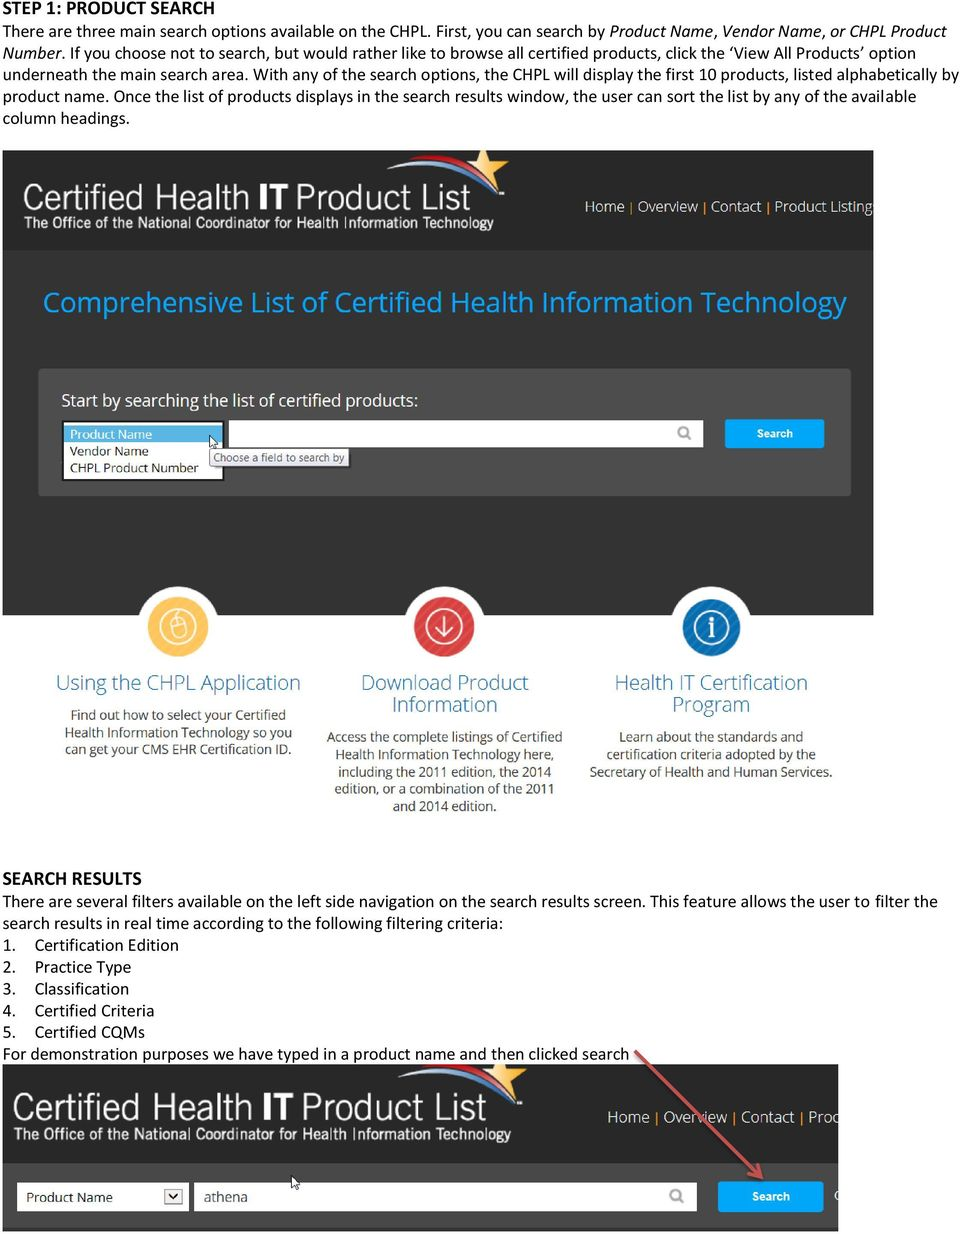 With any of the search options, the CHPL will display the first 10 products, listed alphabetically by product name.